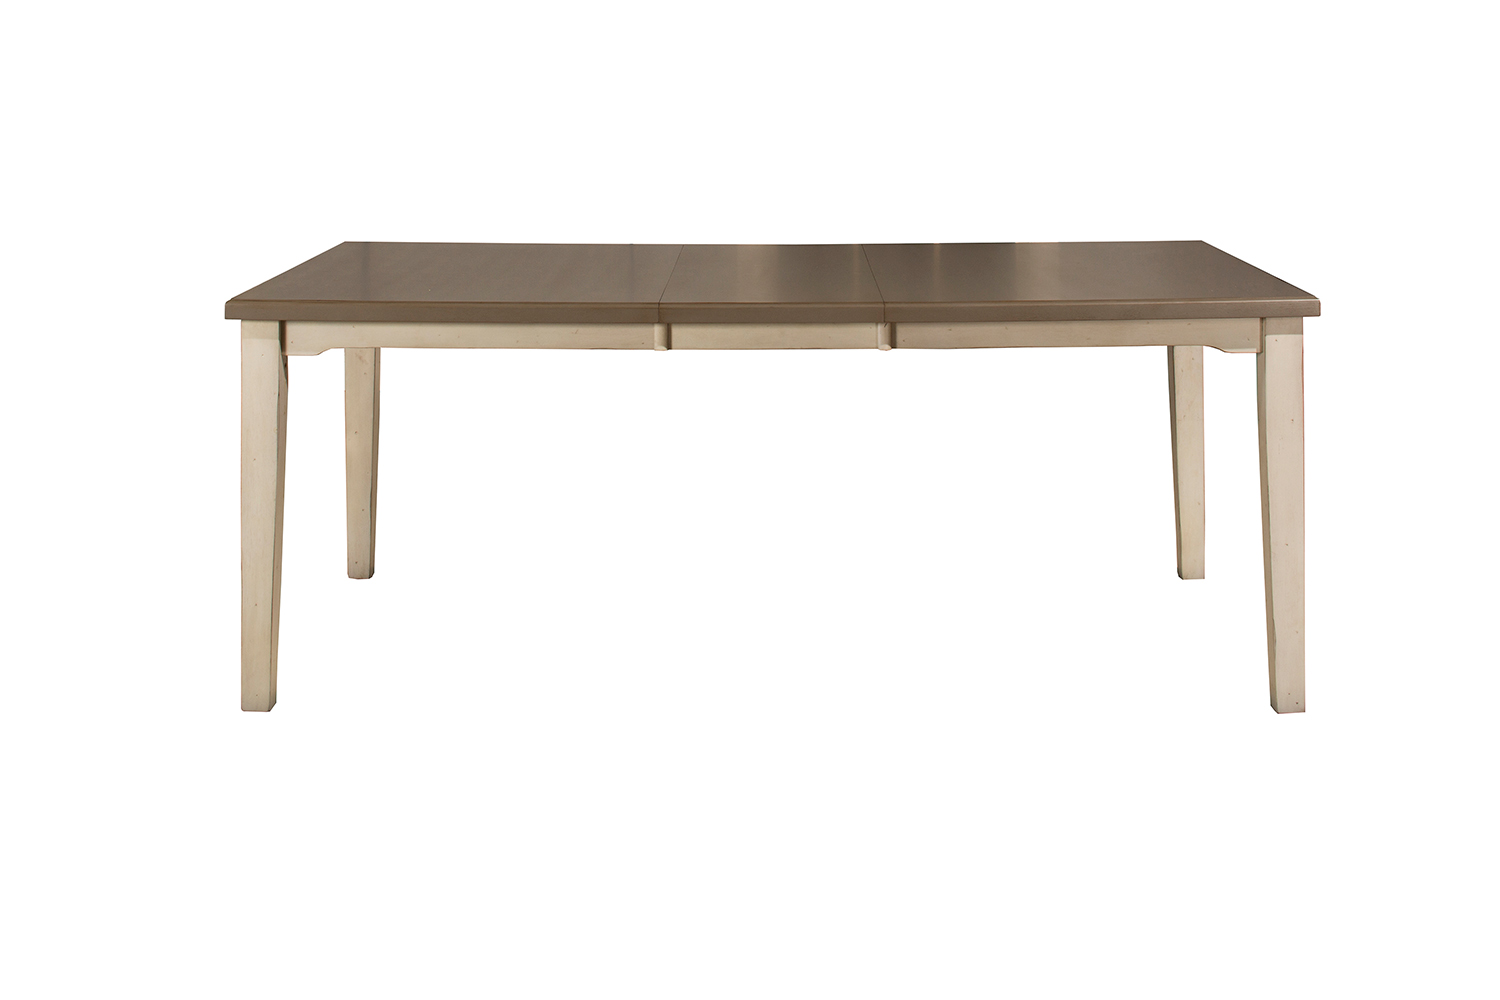 Hillsdale Clarion Rectangle Dining Table - Gray/White